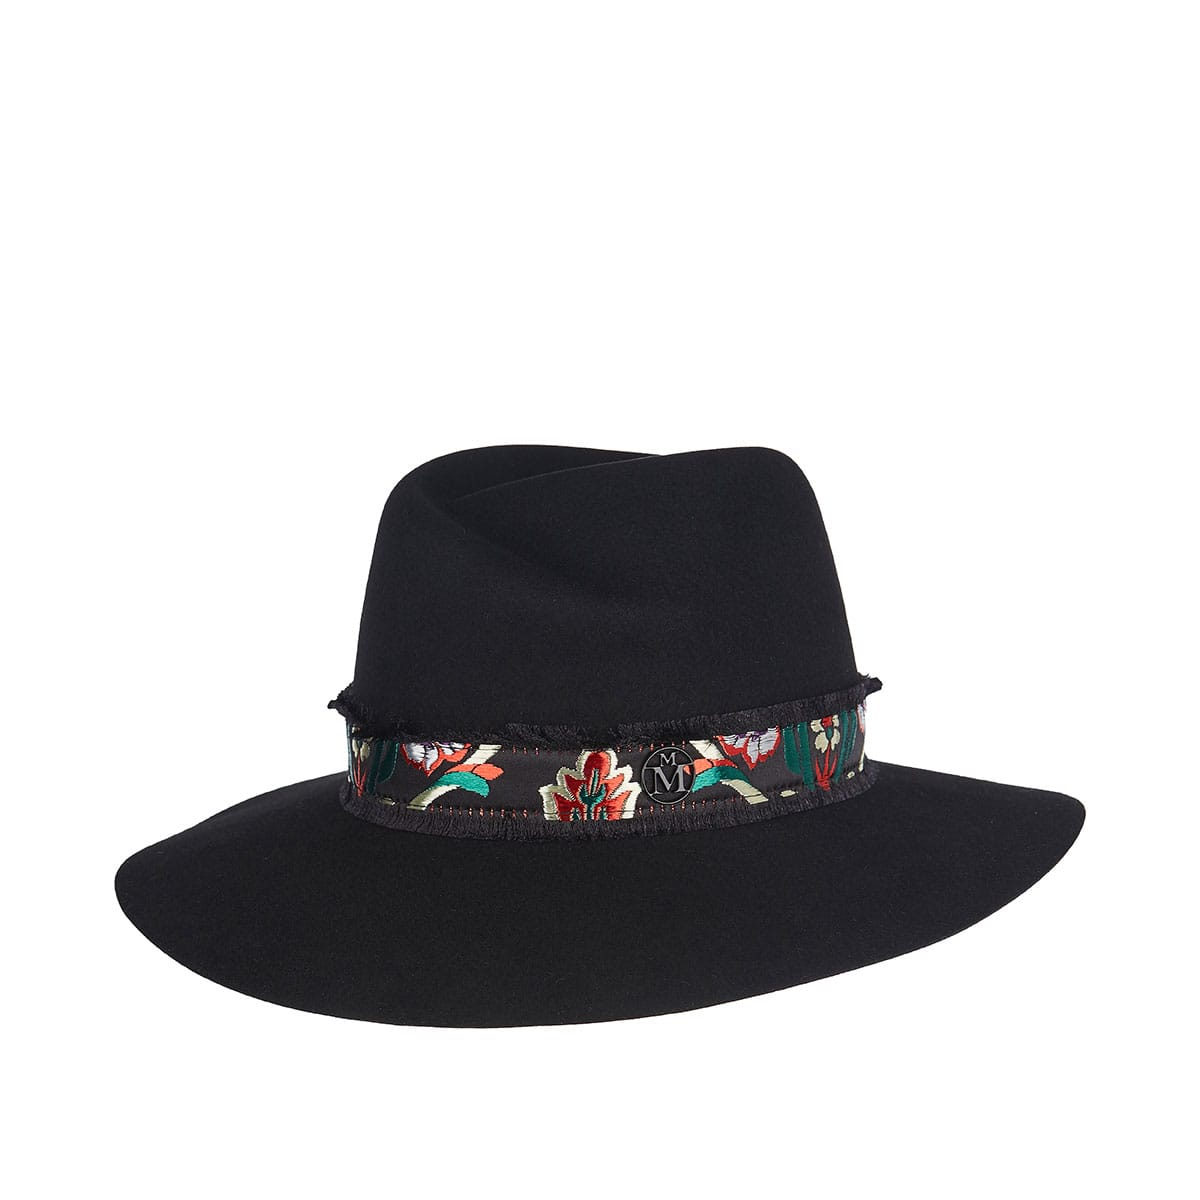 Virginie fedora hat with floral ribbon